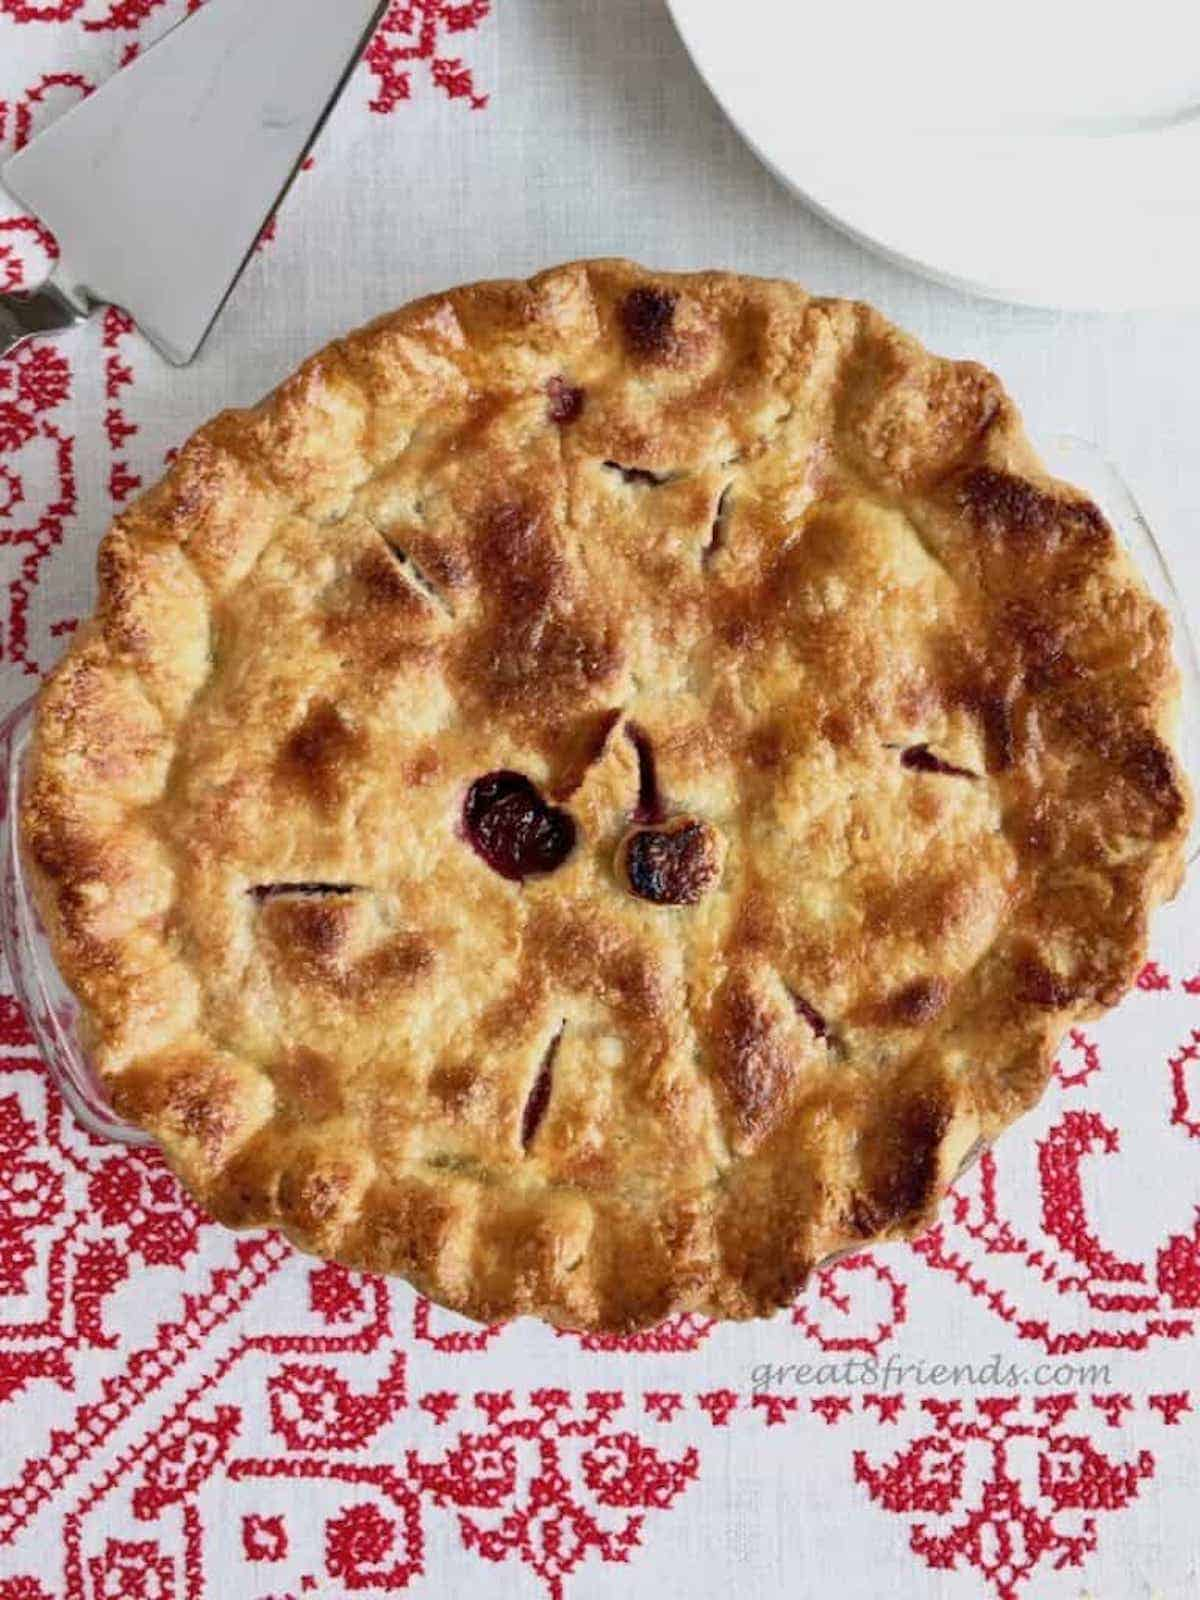 An overhead shot of a whole cherry pie on a red and white tablecloth.